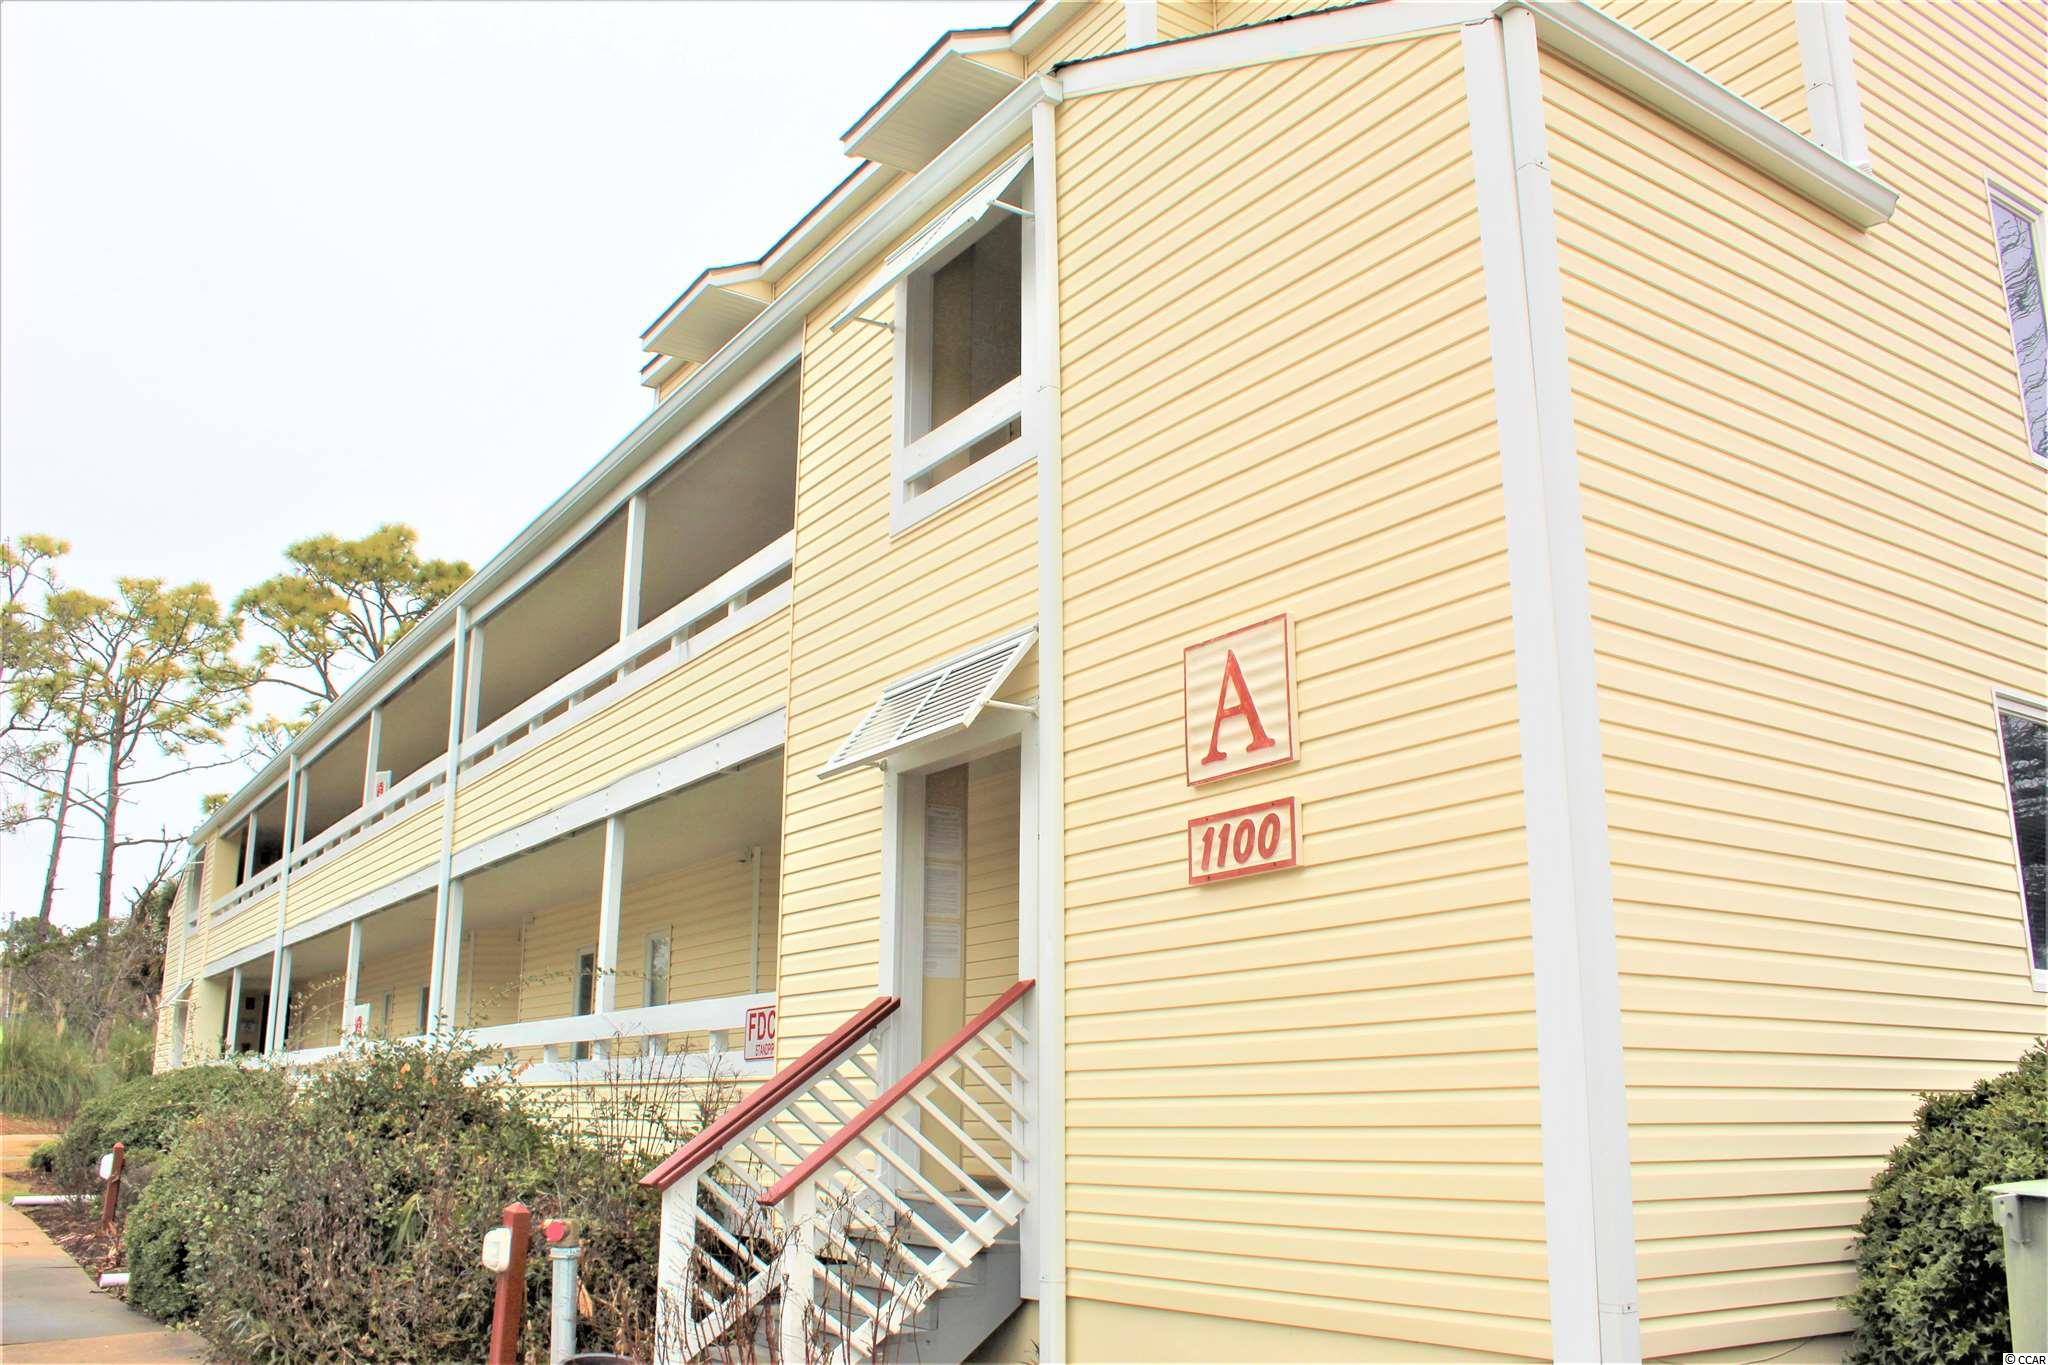 Spacious two bedroom , two and a half bathroom condo located in North Myrtle Beach Golf and Tennis. Includes washer and dryer. Two balconies over looking tennis courts. Easy access to restaurants, shopping and across the street from the NMB Recreation center.